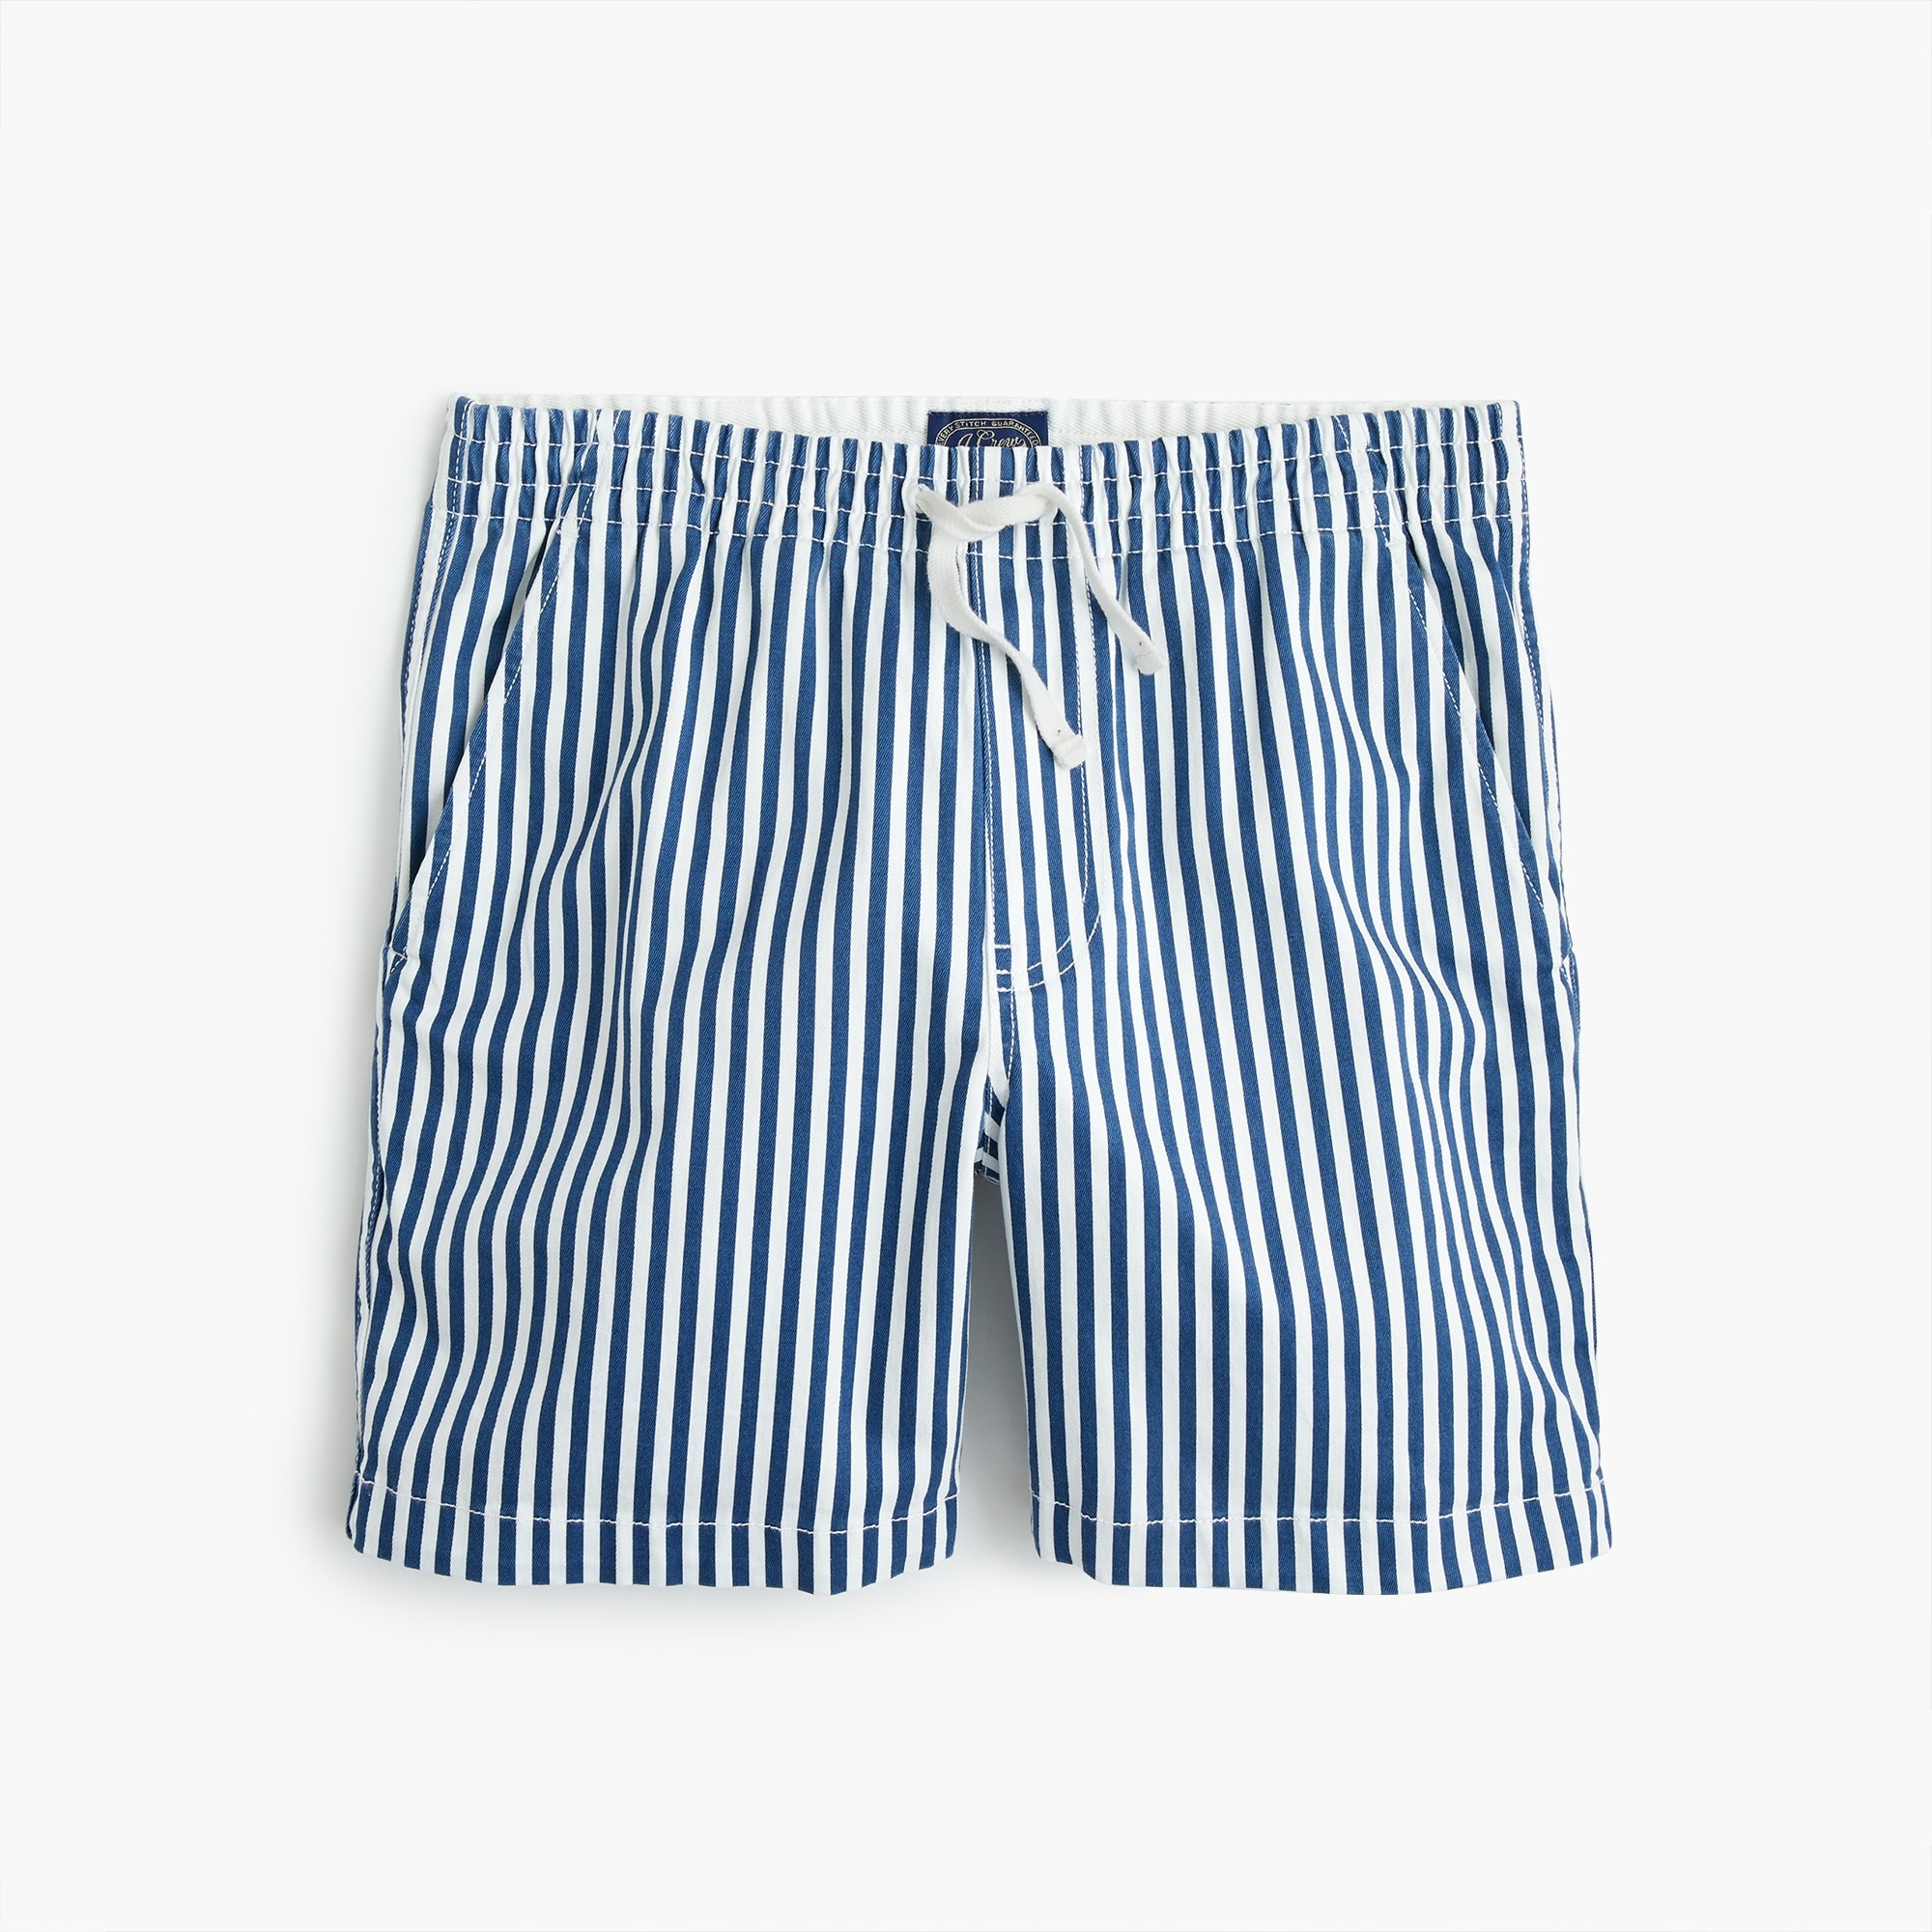 men's stretch dock short in cotton stripe - men's shorts